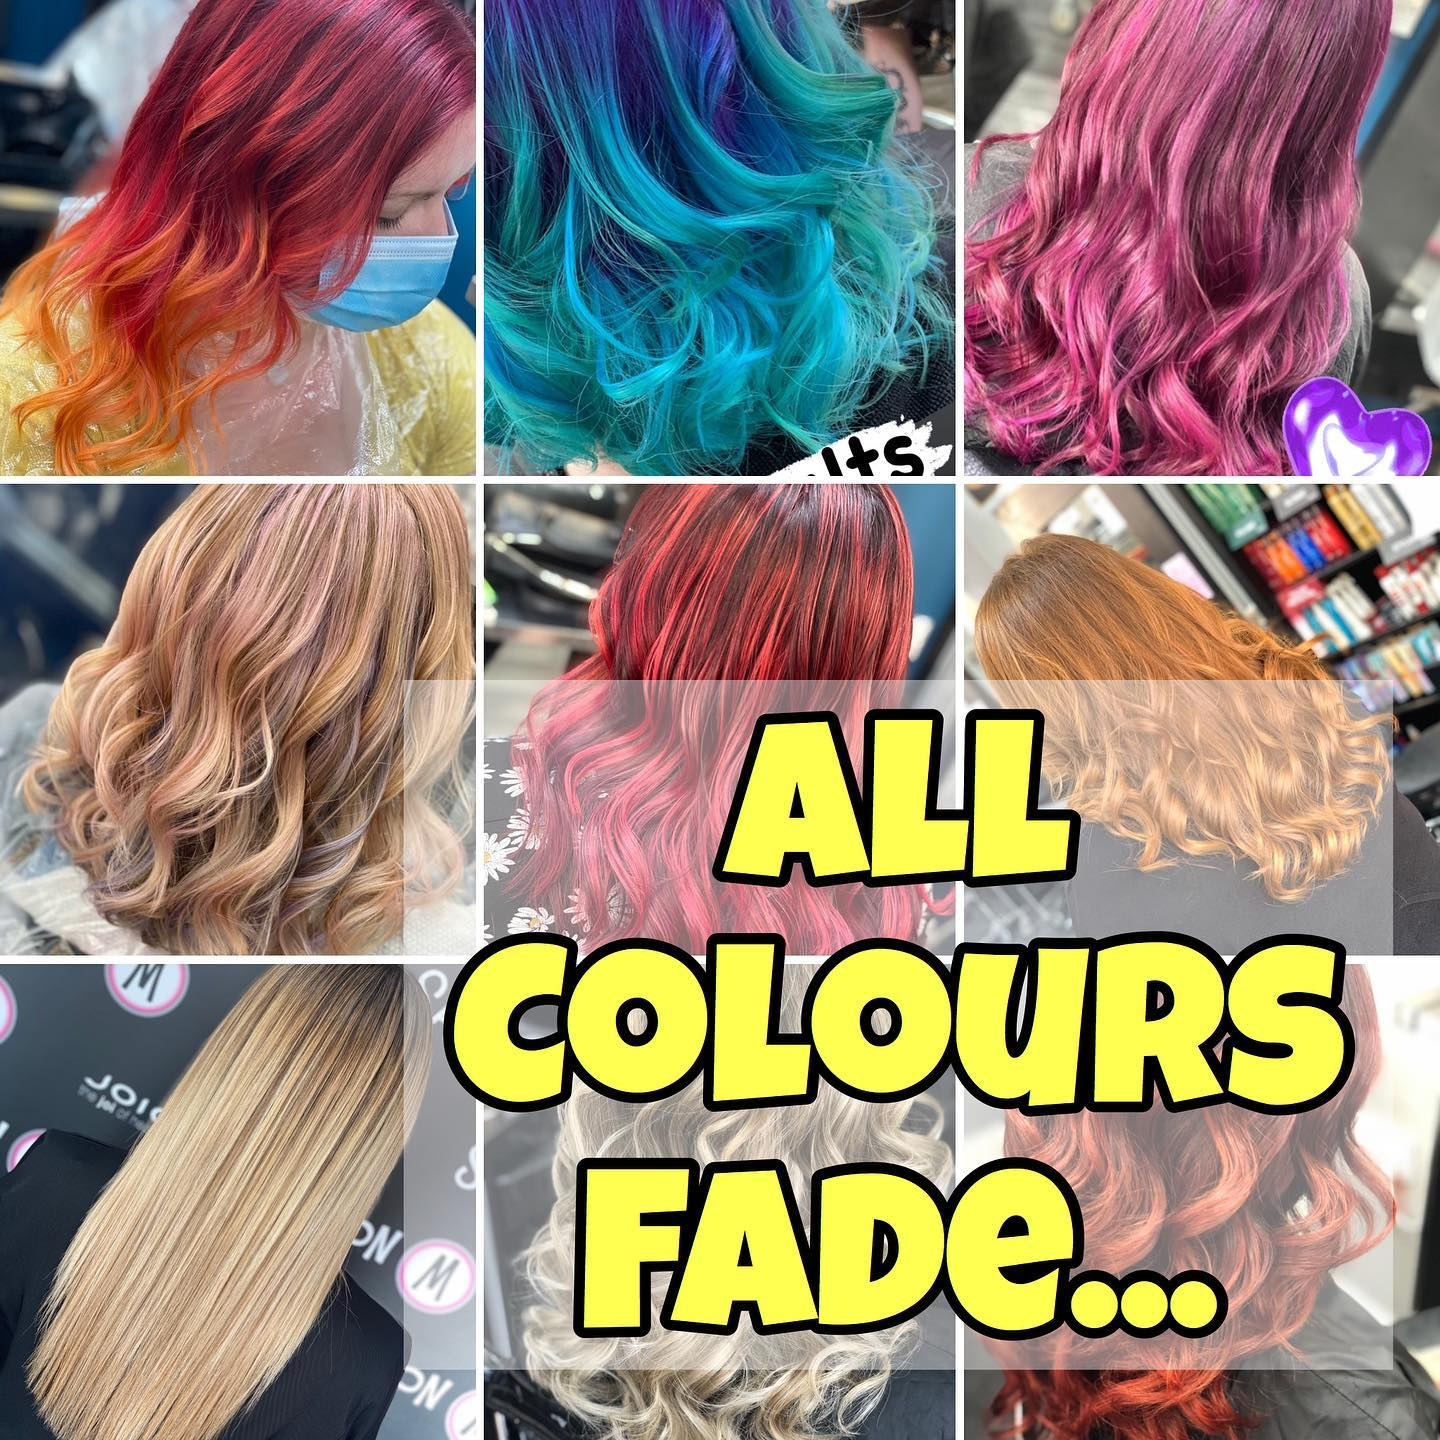 How To Look After Your Vivid Hair Colour